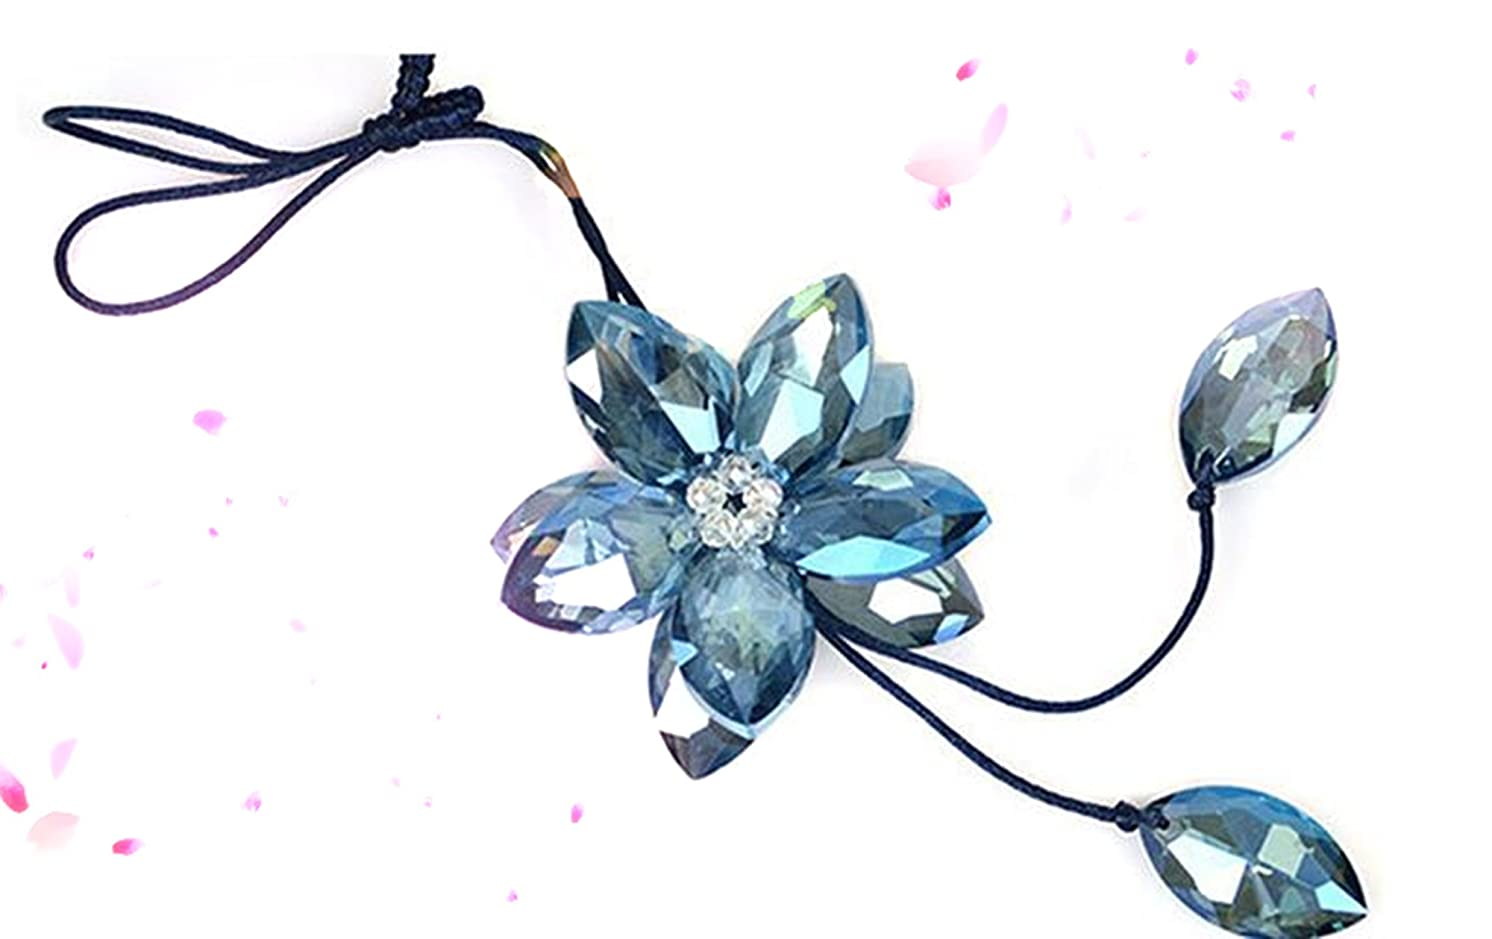 Auto Accessories Car Charm/Pendant/Jushi -Crystal Lovely BLue Snow Flower /Snowflake Car Charm/Pendant/ Auto Rearview Mirror Ornament Accessories-Good For Holiday, Gift--1PC--- From NY